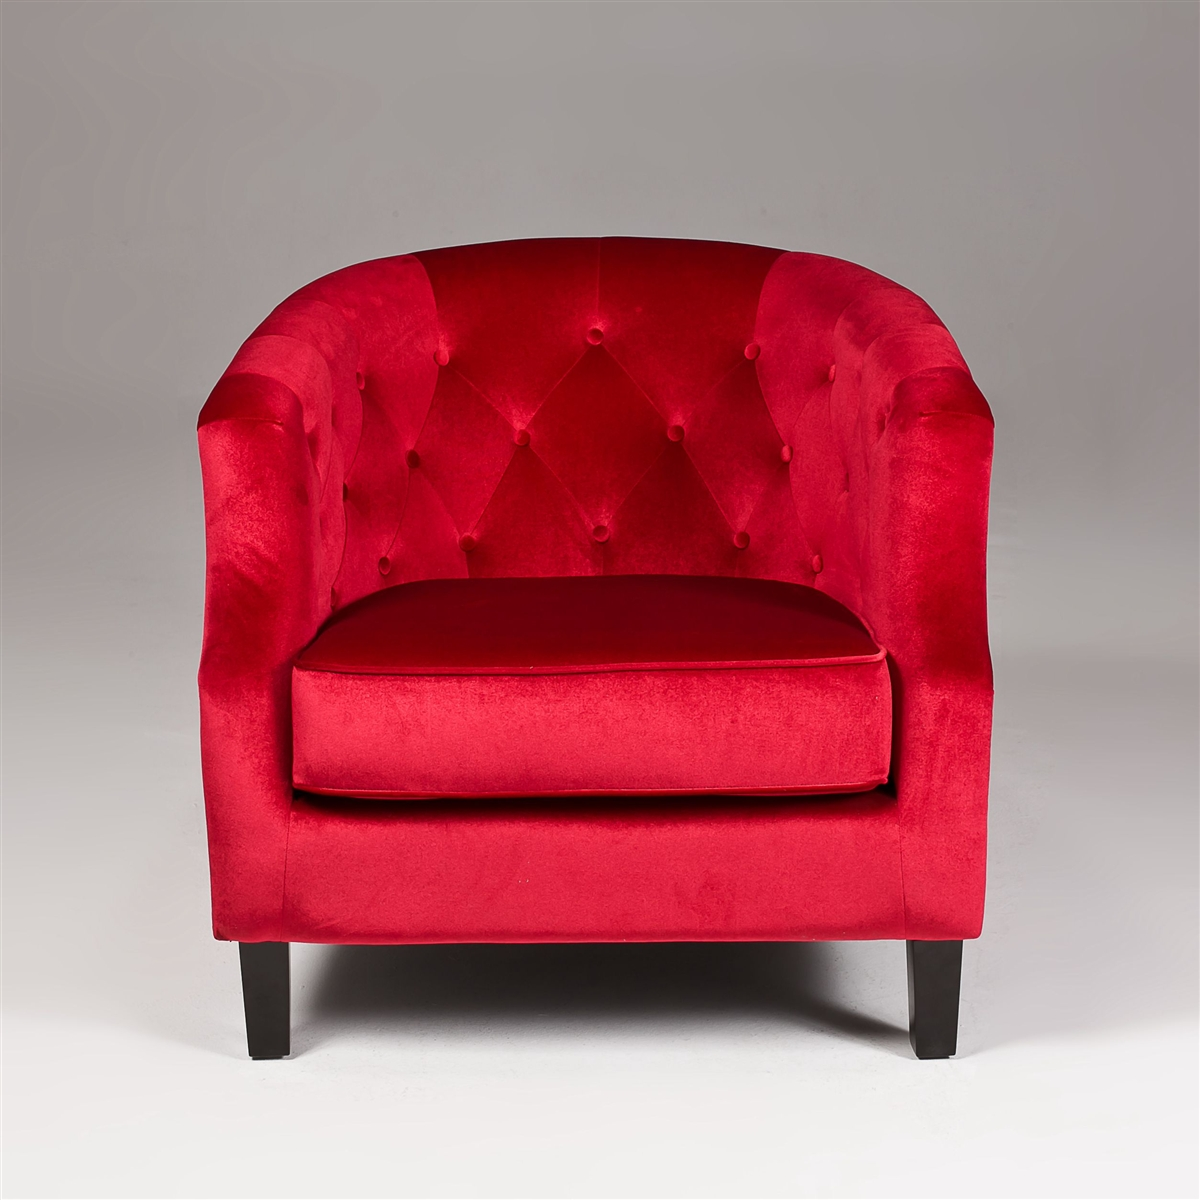 Room with red accent chair - Red Velvet Sofa Red Accent Chair Velvet Accent Chair Red